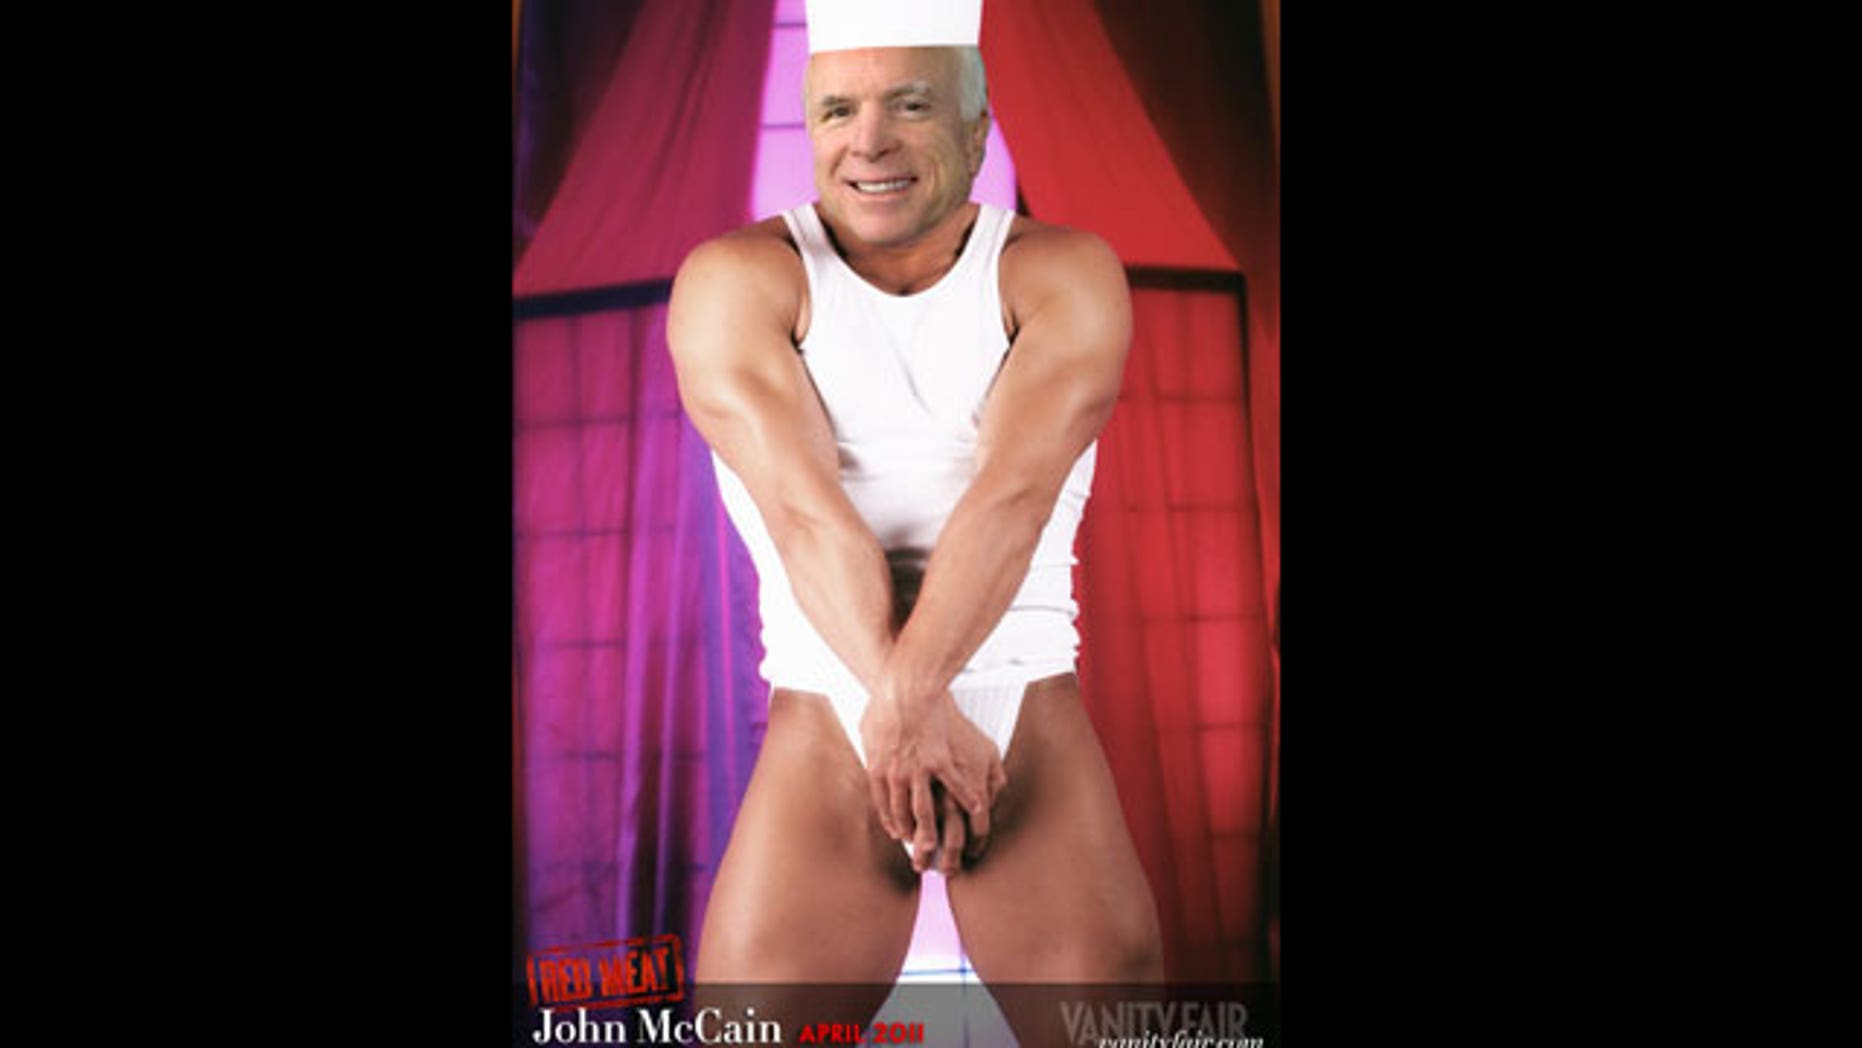 A Vanity Fair calendar features Republican Senator John McCain's head digitally added to the body of a male model.